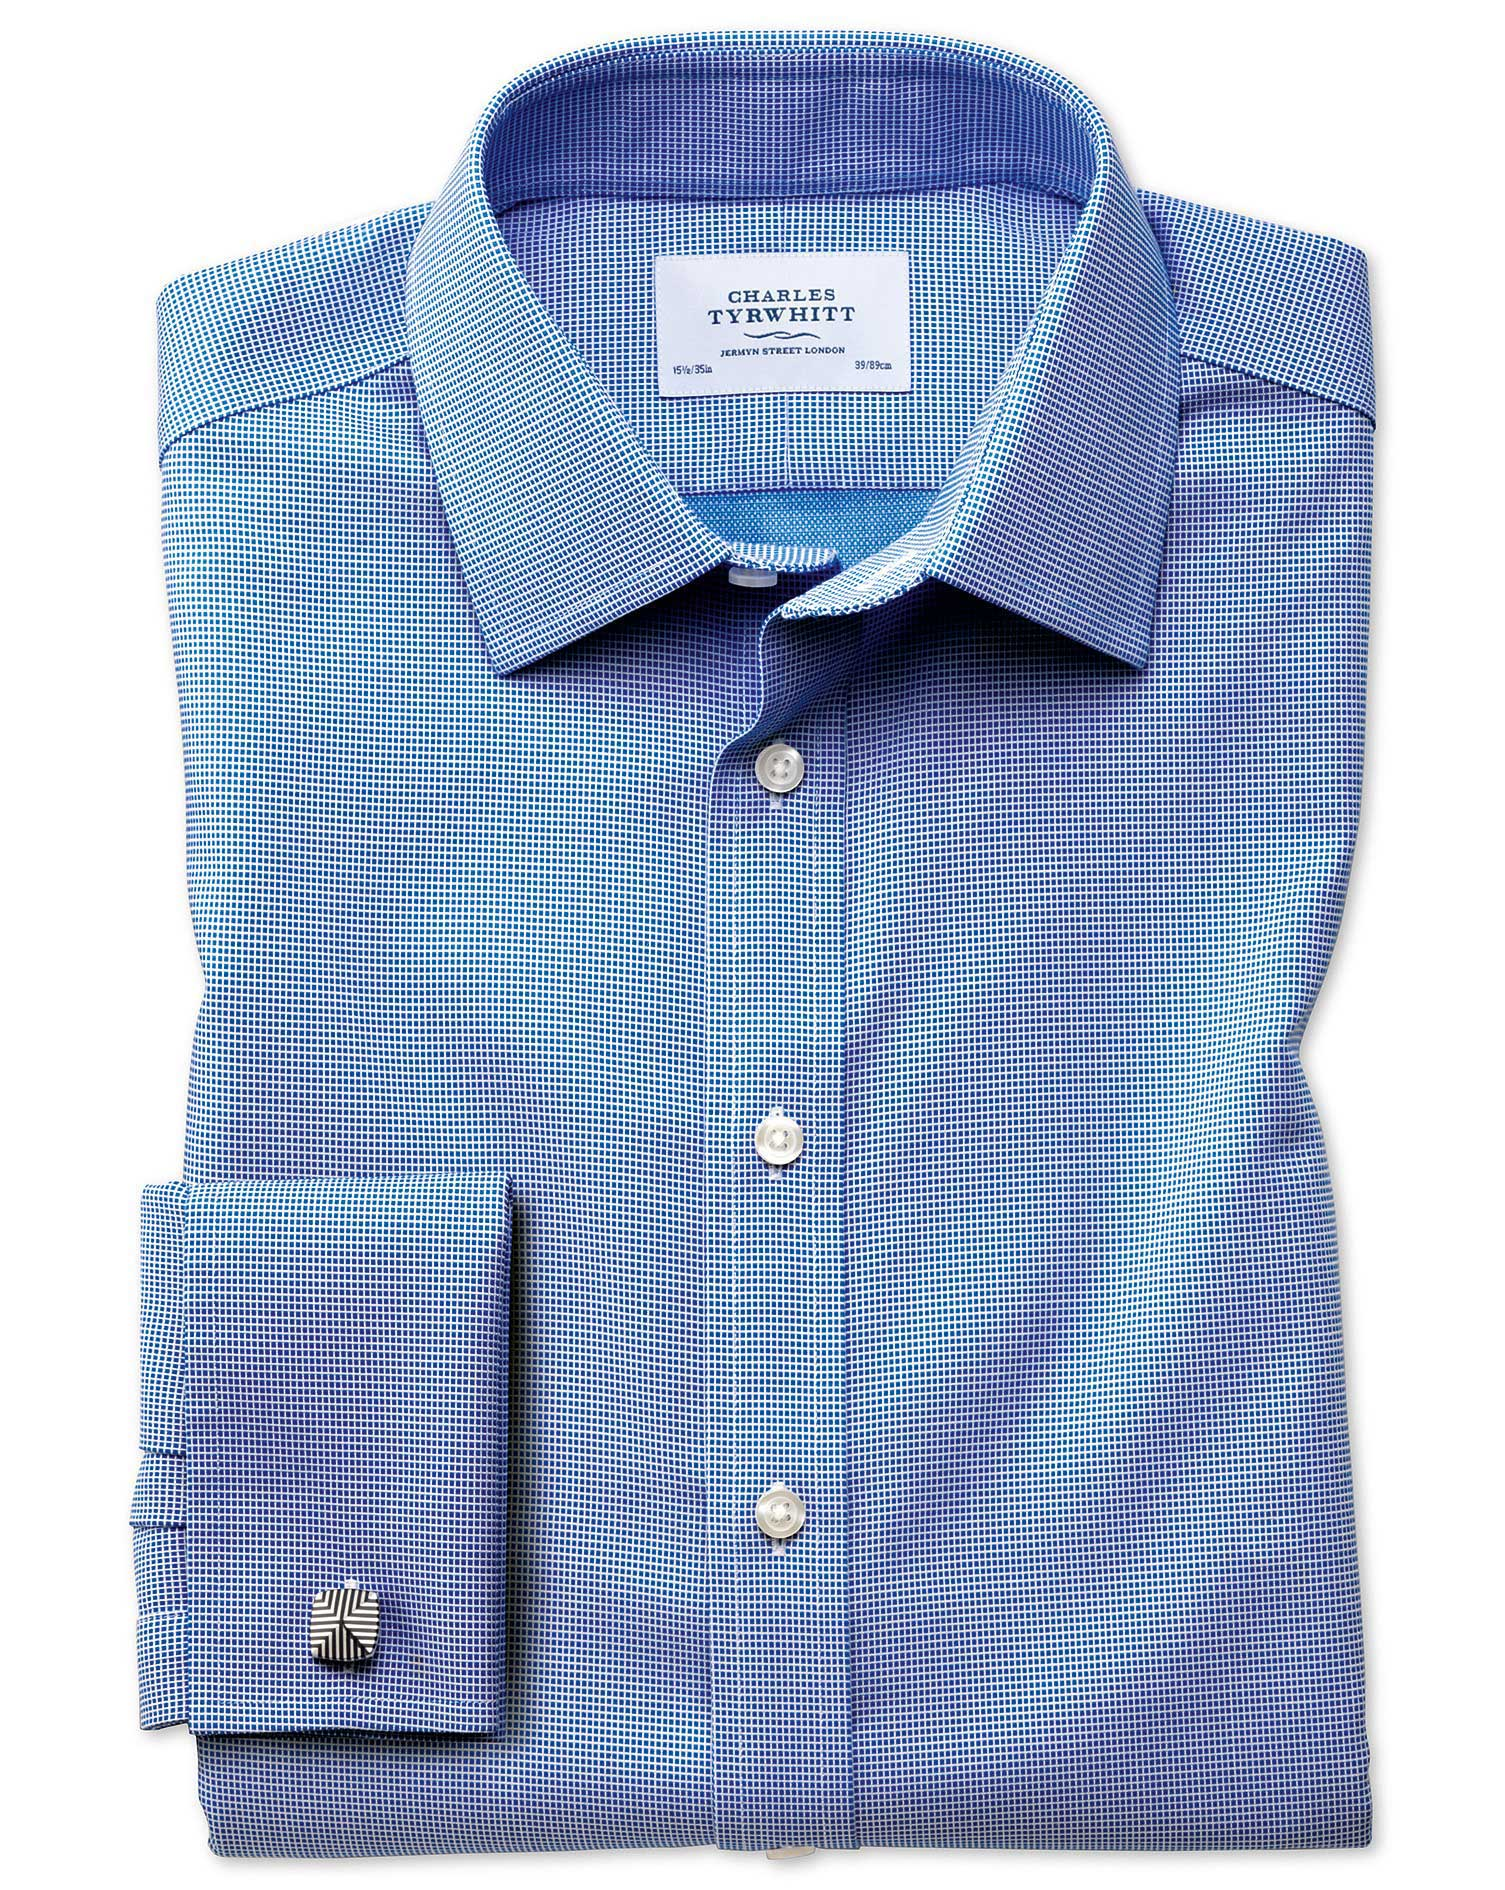 Classic Fit Non-Iron Square Weave Blue Cotton Formal Shirt Double Cuff Size 16/35 by Charles Tyrwhit